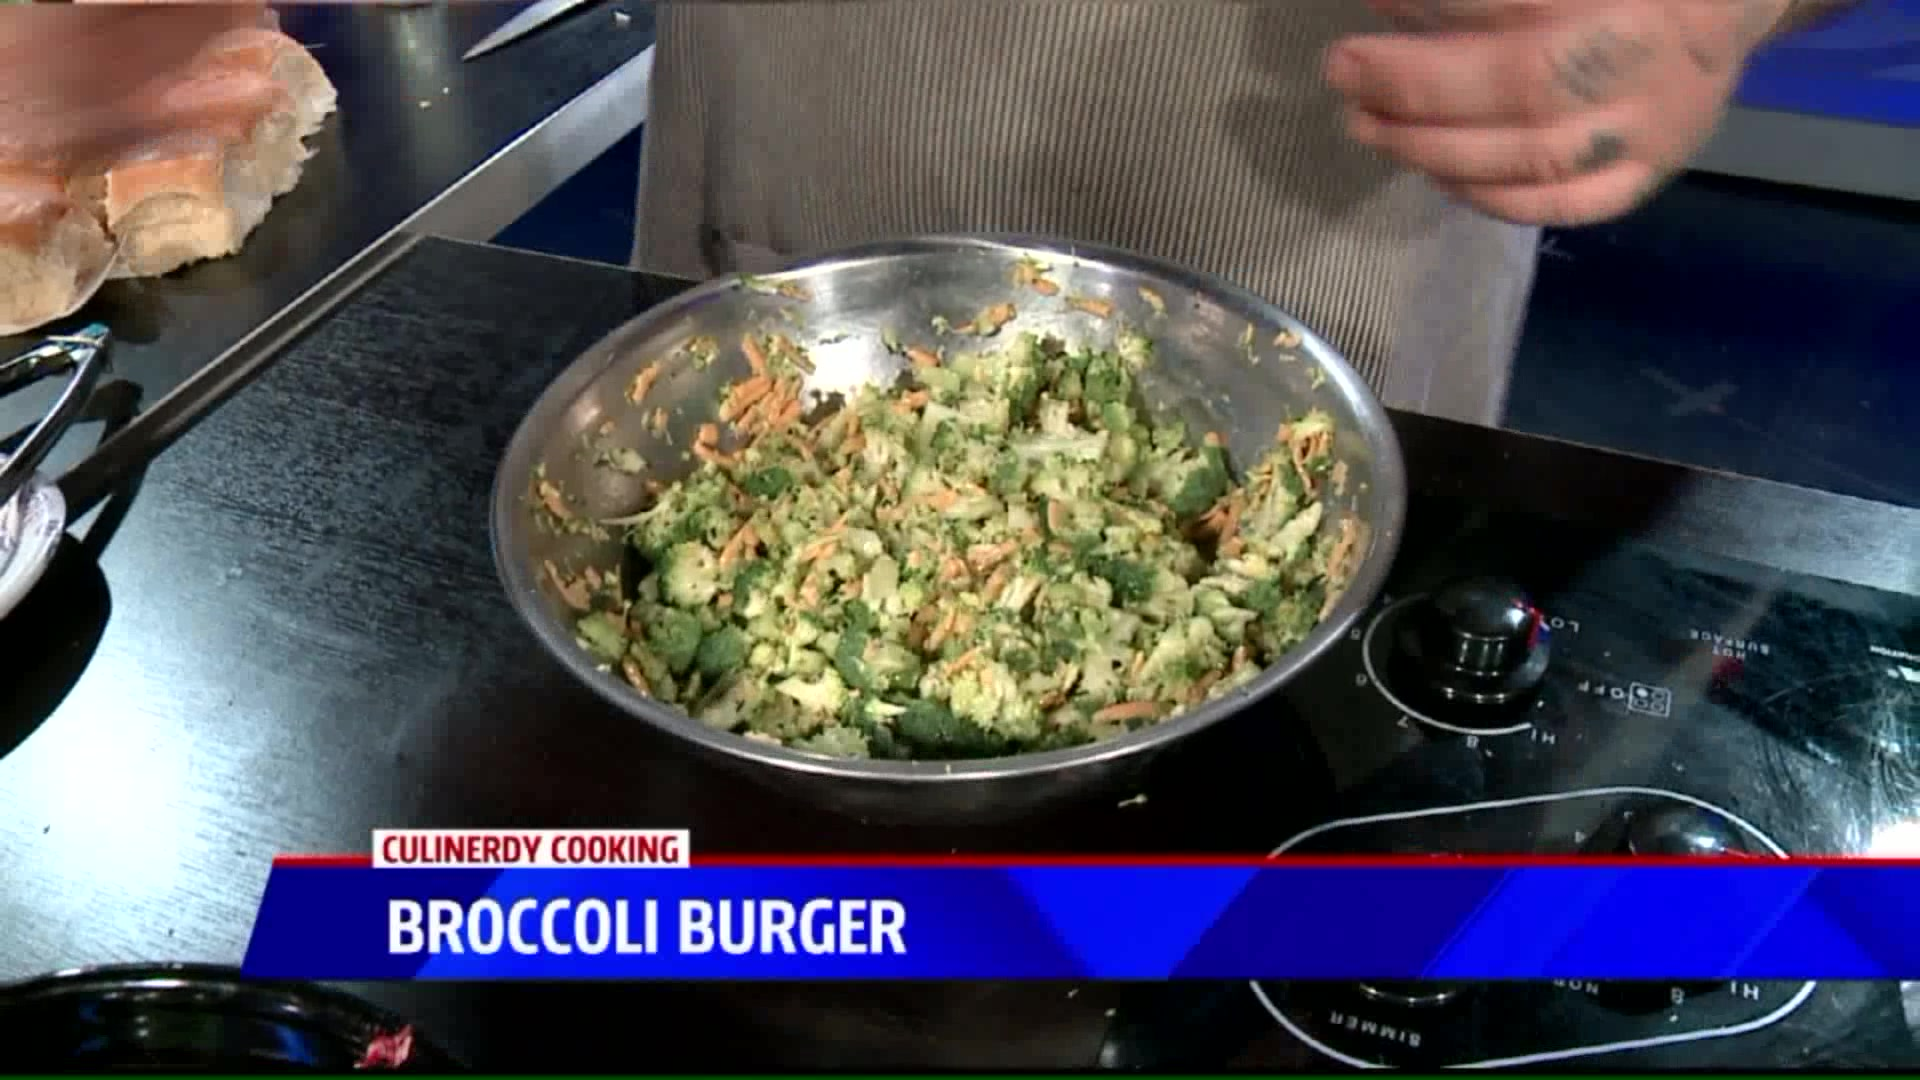 How To Make A Broccoli Burger